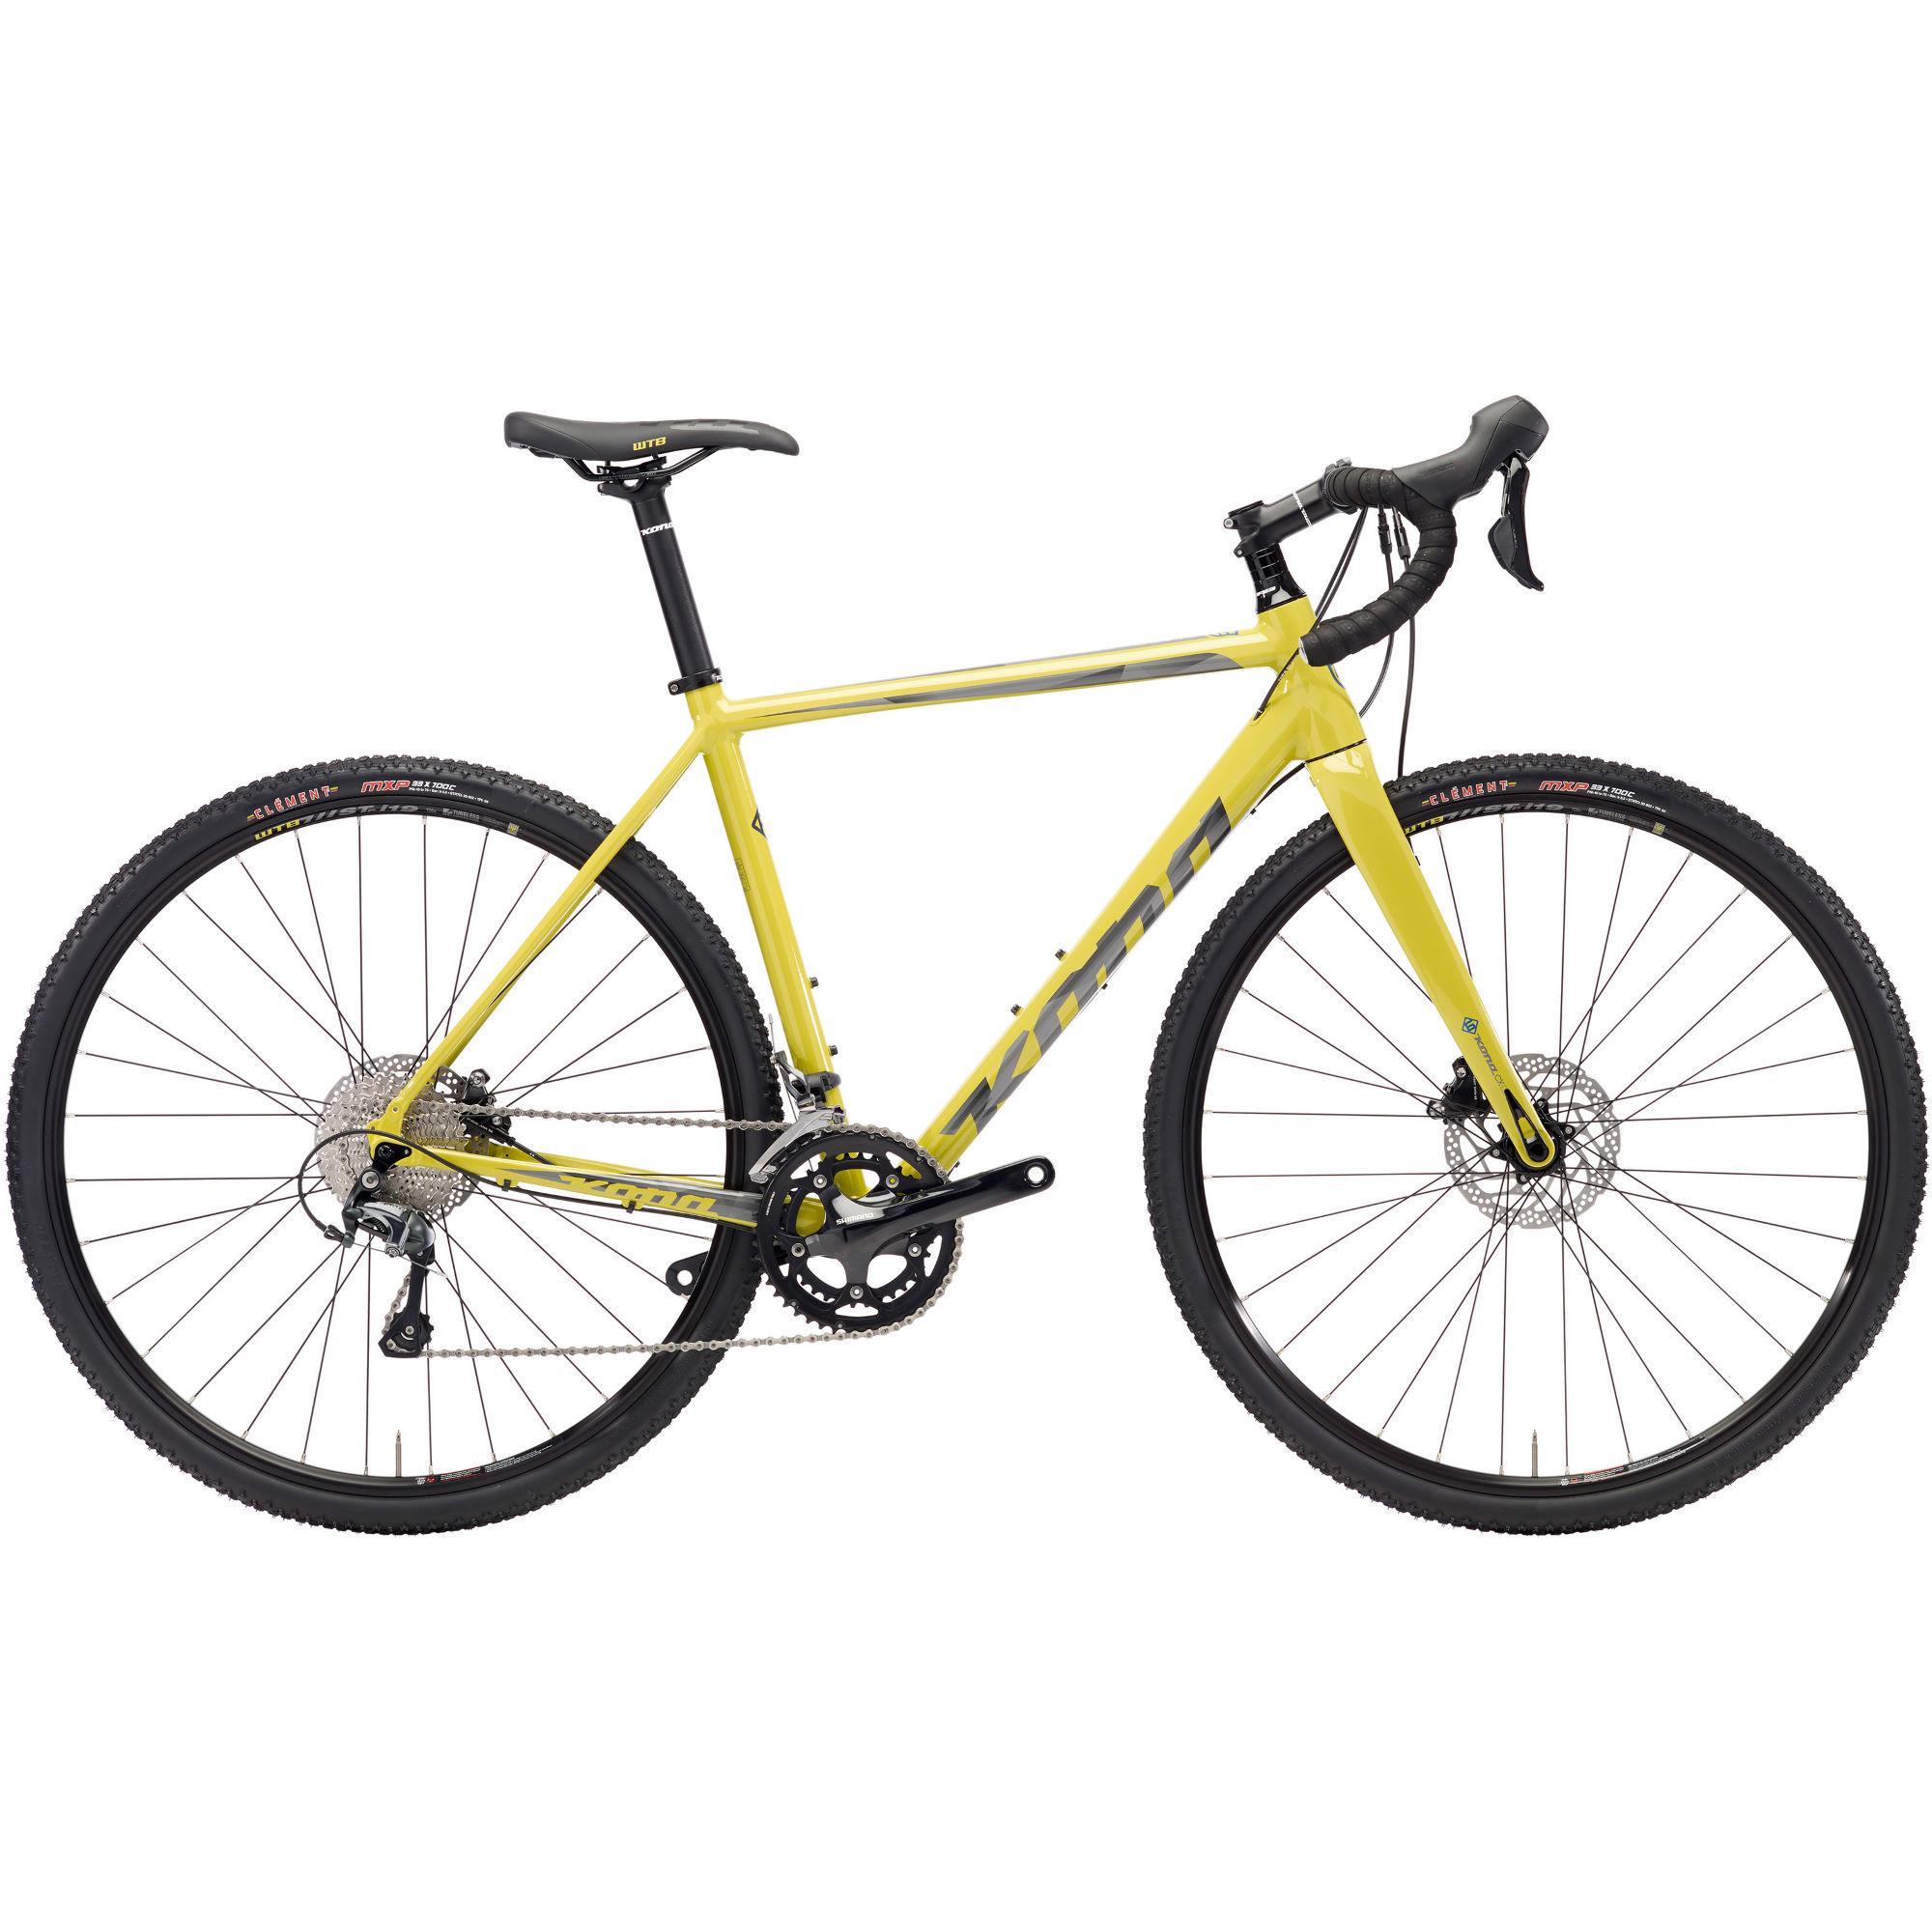 Wiggle | Great range of cyclocross bikes at Wiggle